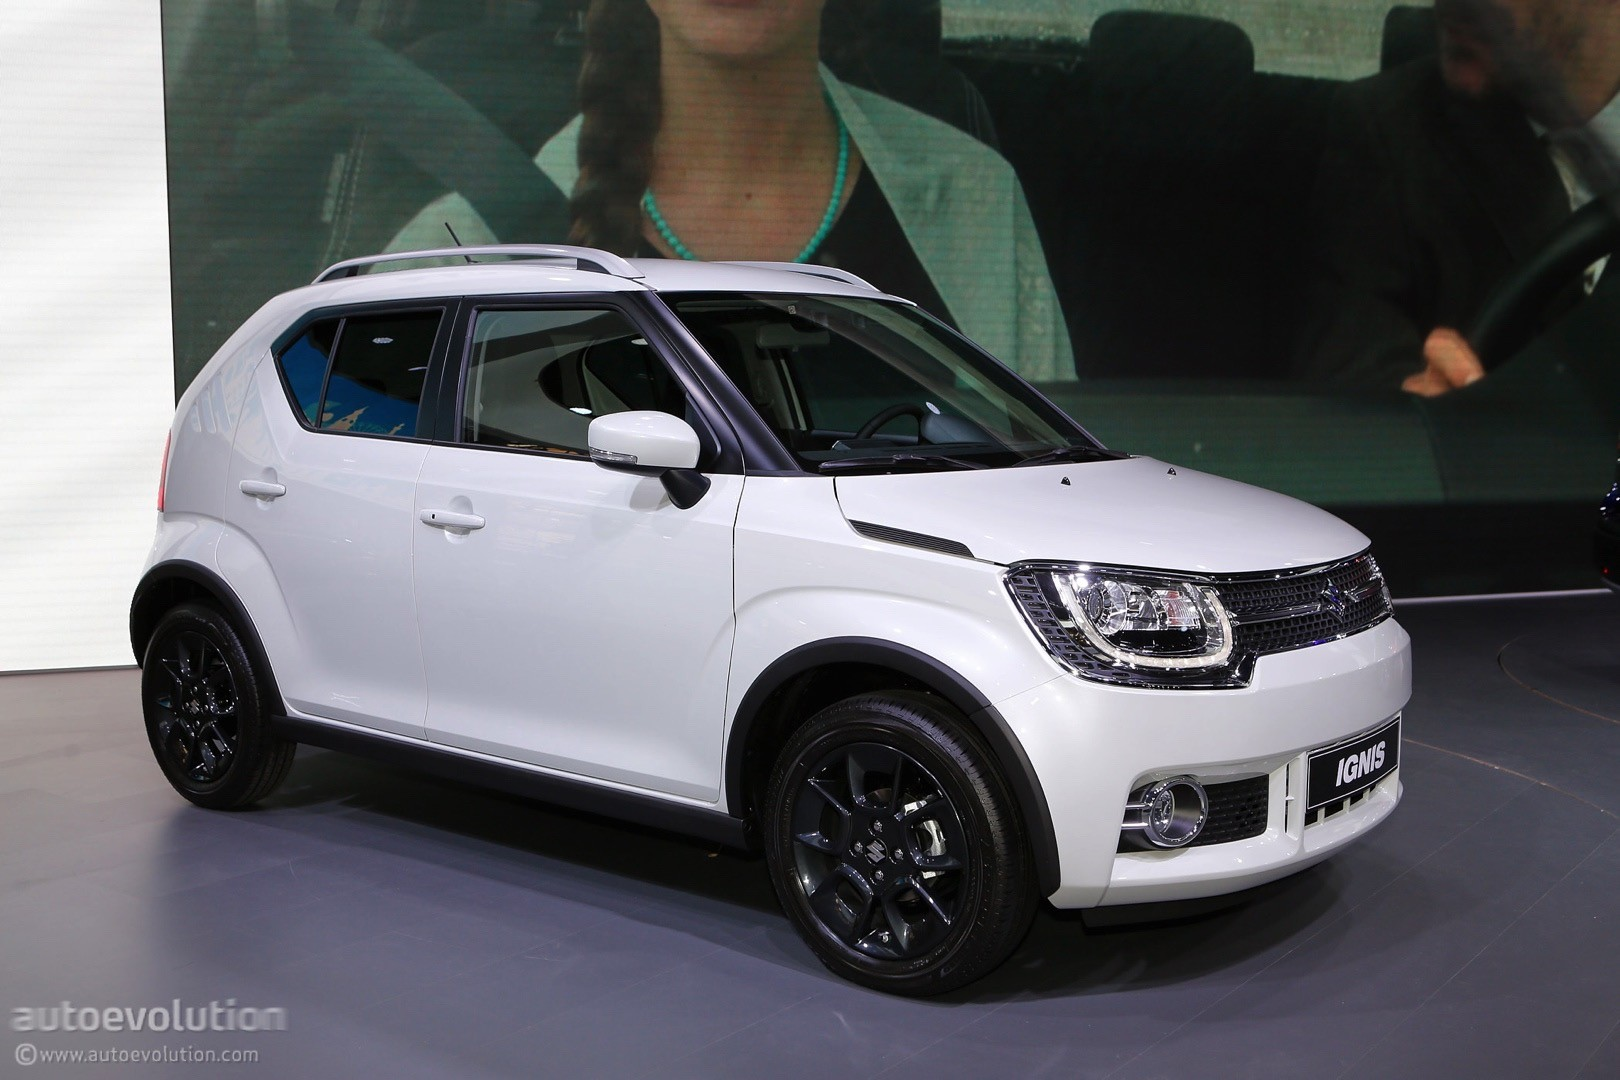 2017 suzuki ignis locks down on paris, sx4 s-cross facelift still